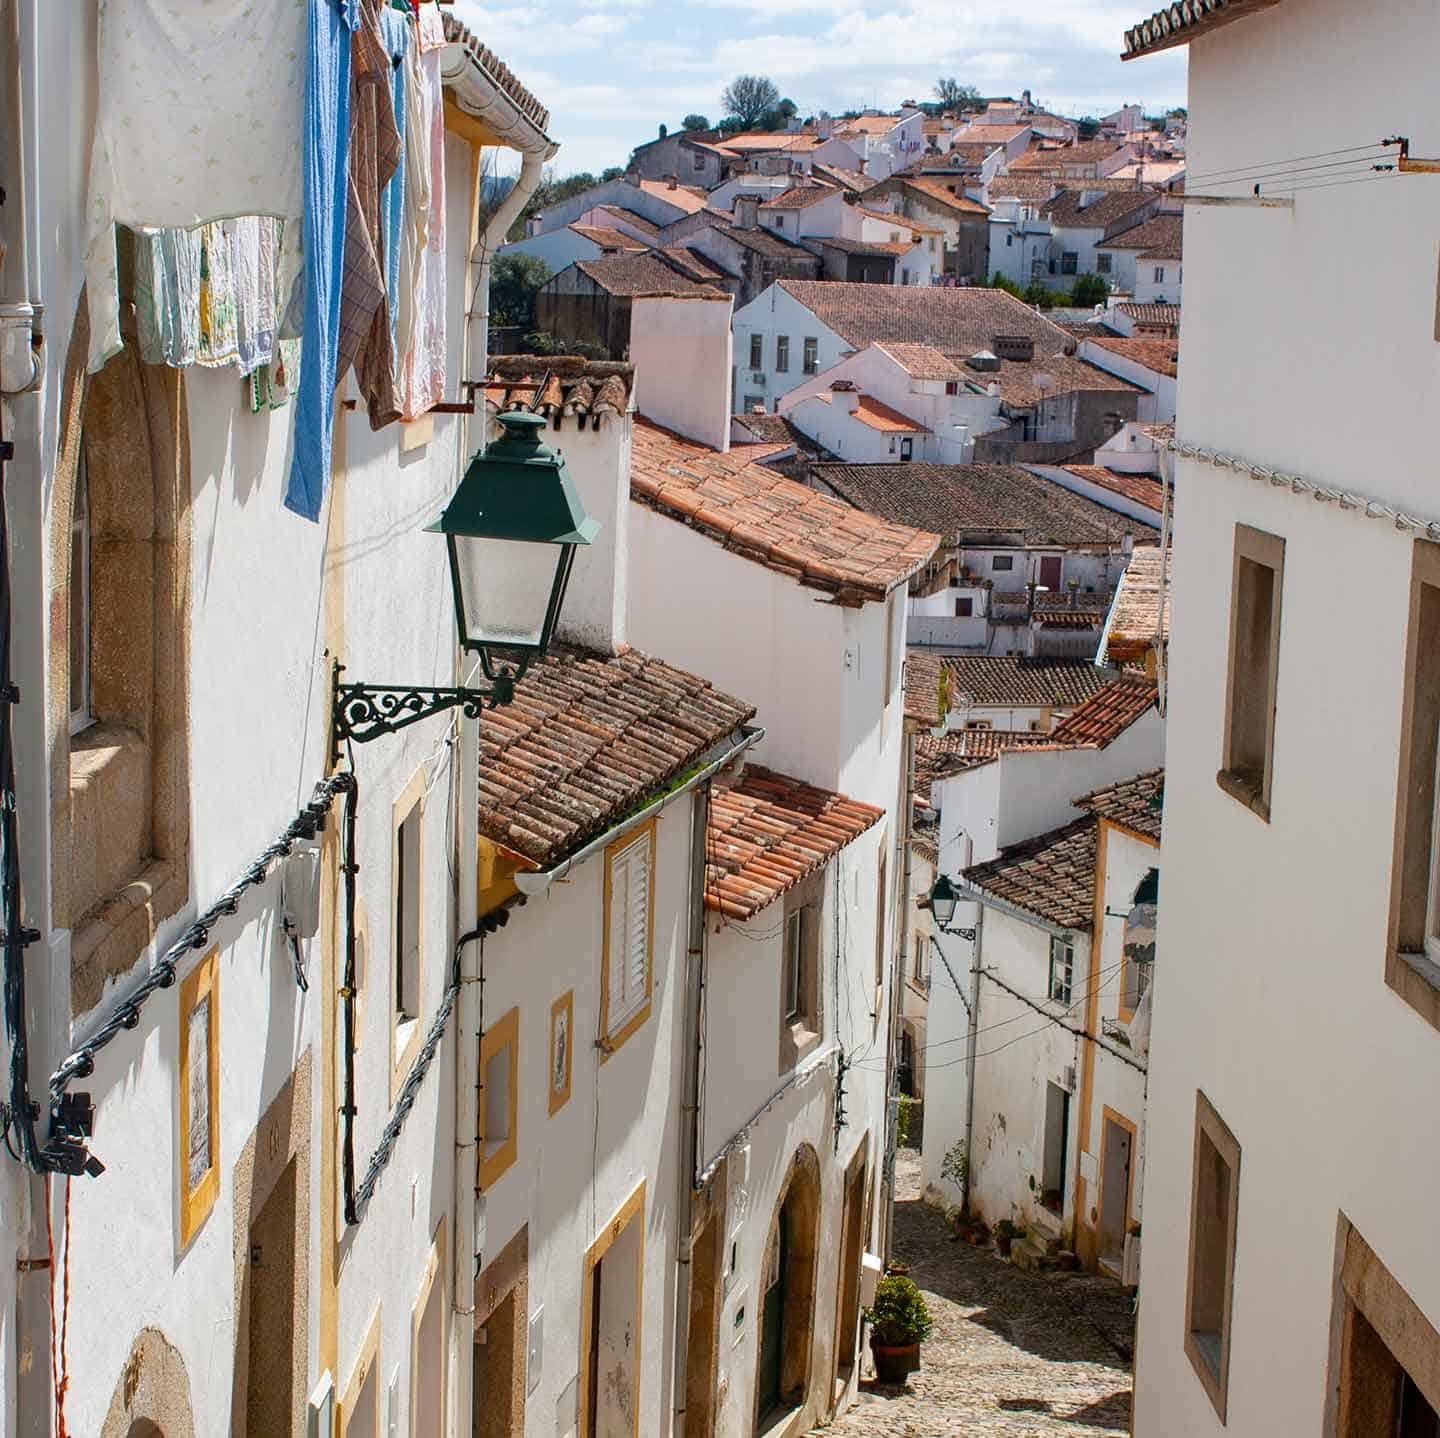 Image of a medieval street in the old town of Castelo de Vide Portugal